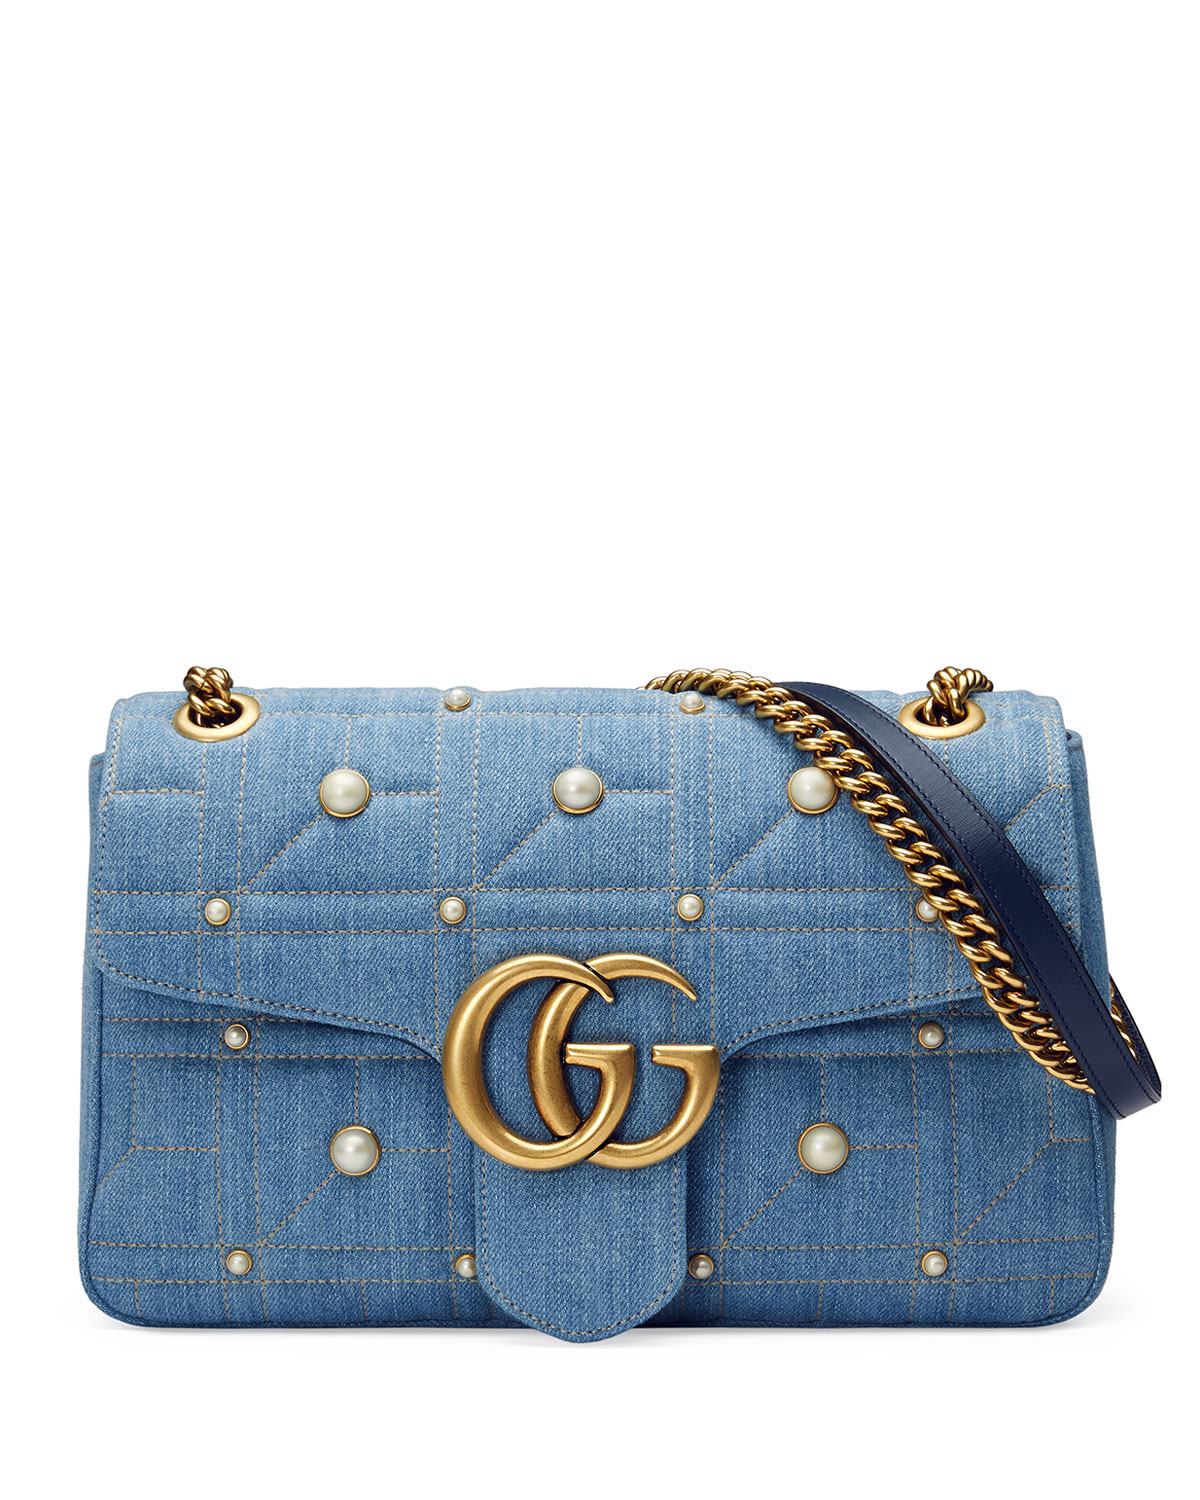 c73795832d306d Gucci GG Marmont 2.0 Medium Quilted Denim Shoulder Bag with Studs ...